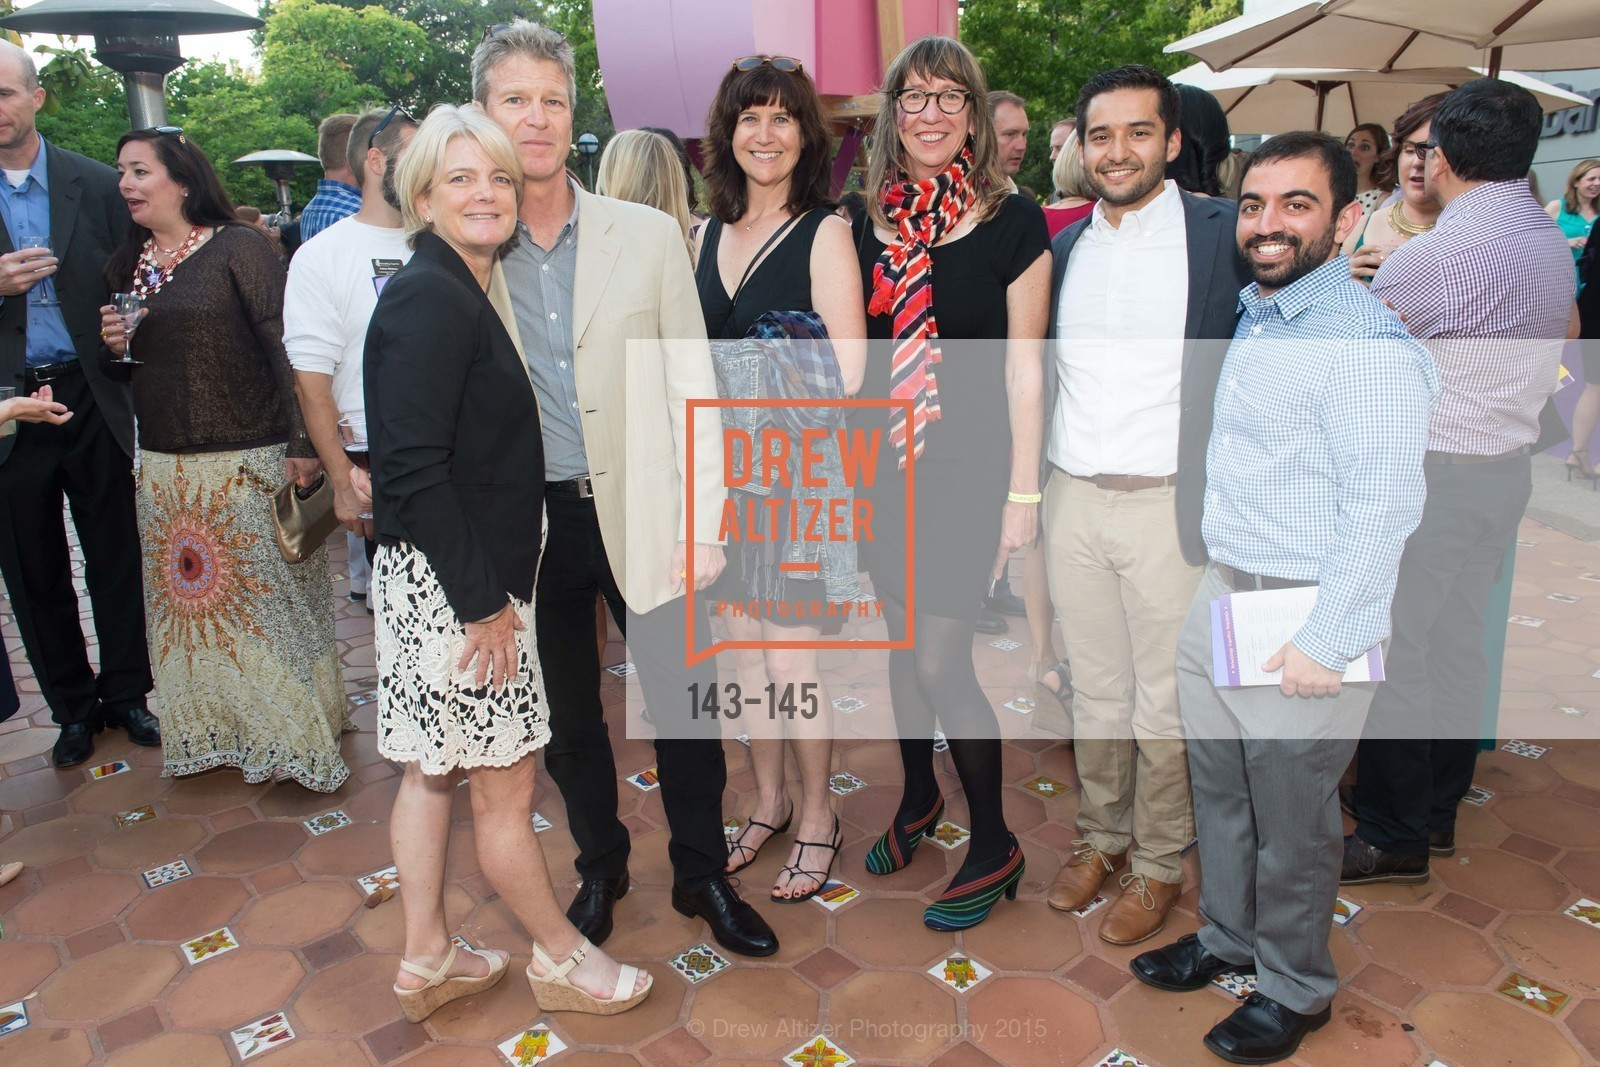 Abby Hayes, Ken Hayes, Eileen Butler, Barbara Butler, Rafael Delgavilla, Daniel Maiel, DREAMS HAPPEN: Playhouse Auction and Gala, Stanford Shopping Center, June 5th, 2015,Drew Altizer, Drew Altizer Photography, full-service agency, private events, San Francisco photographer, photographer california